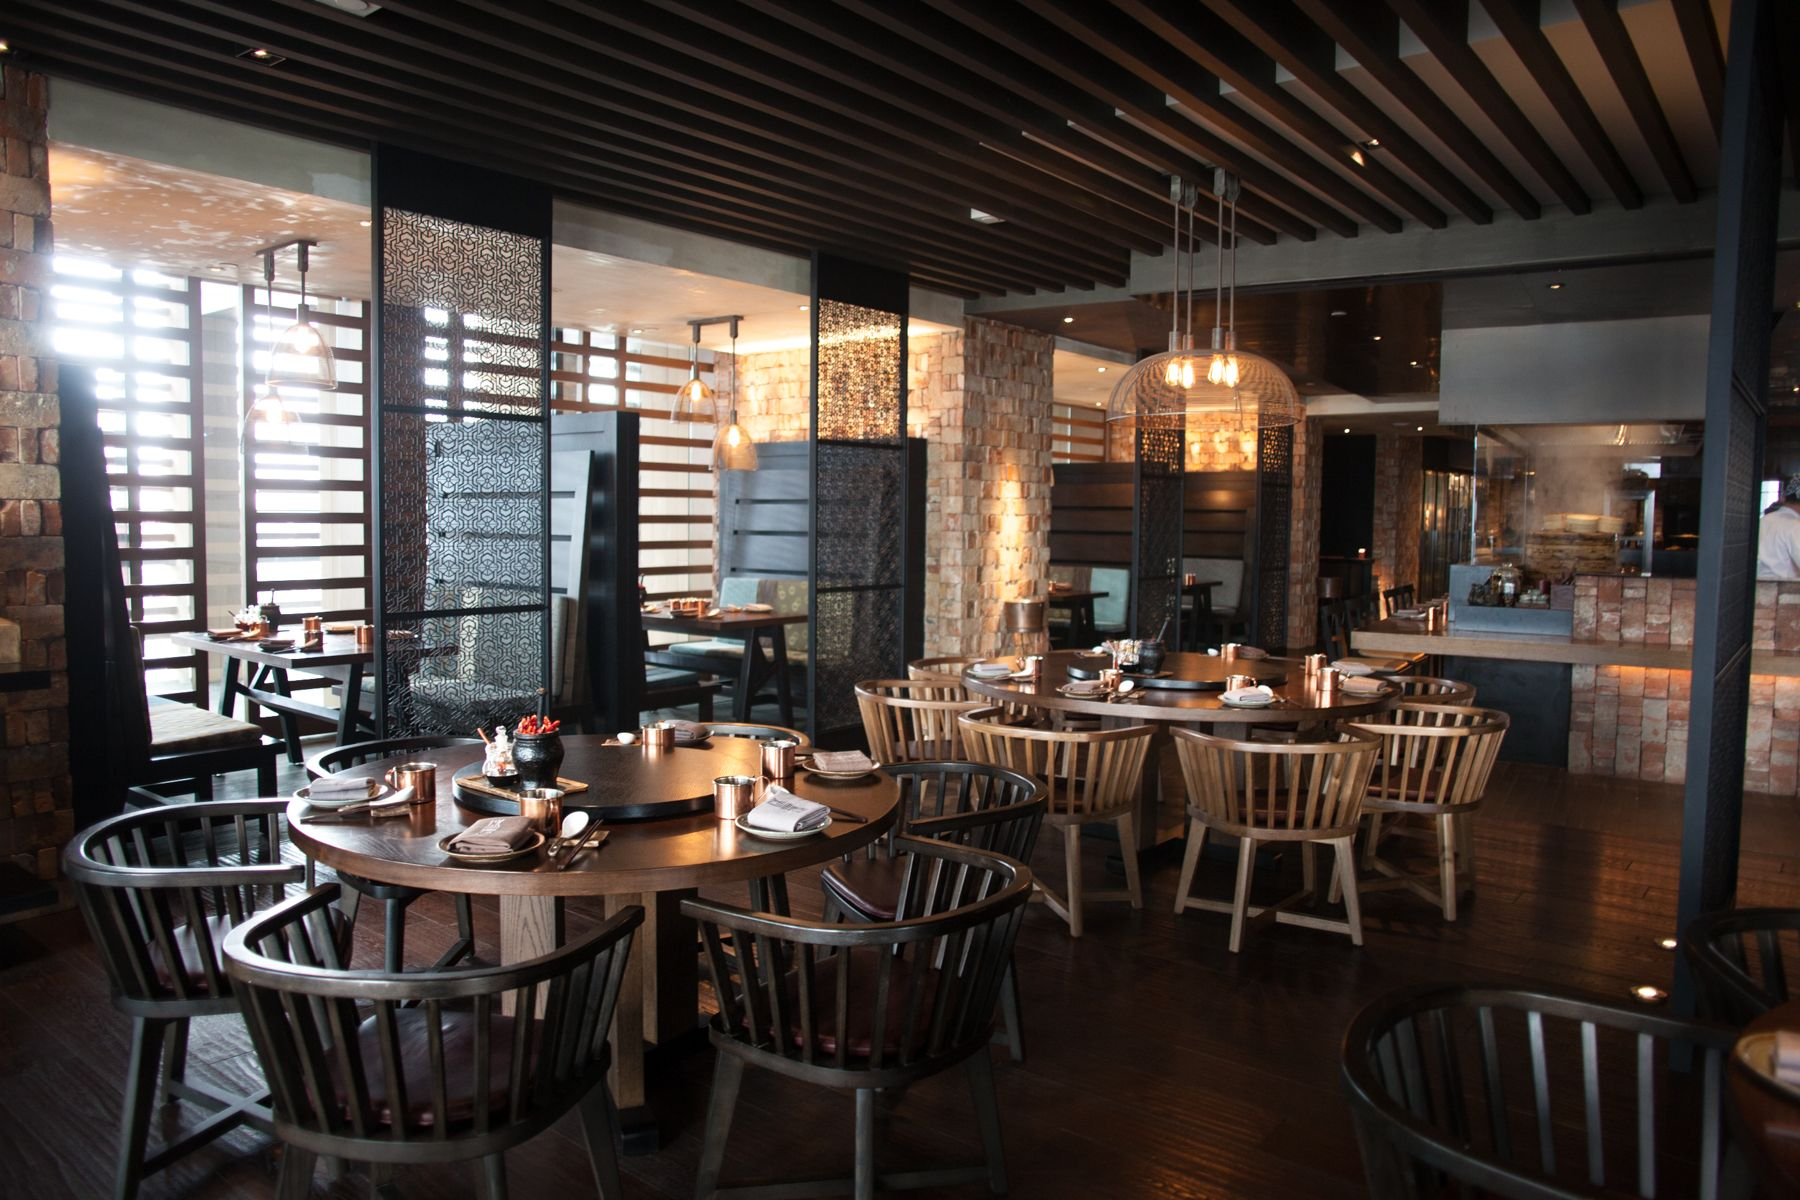 country kitchen rosewood beijing - Google Search | Special images ...